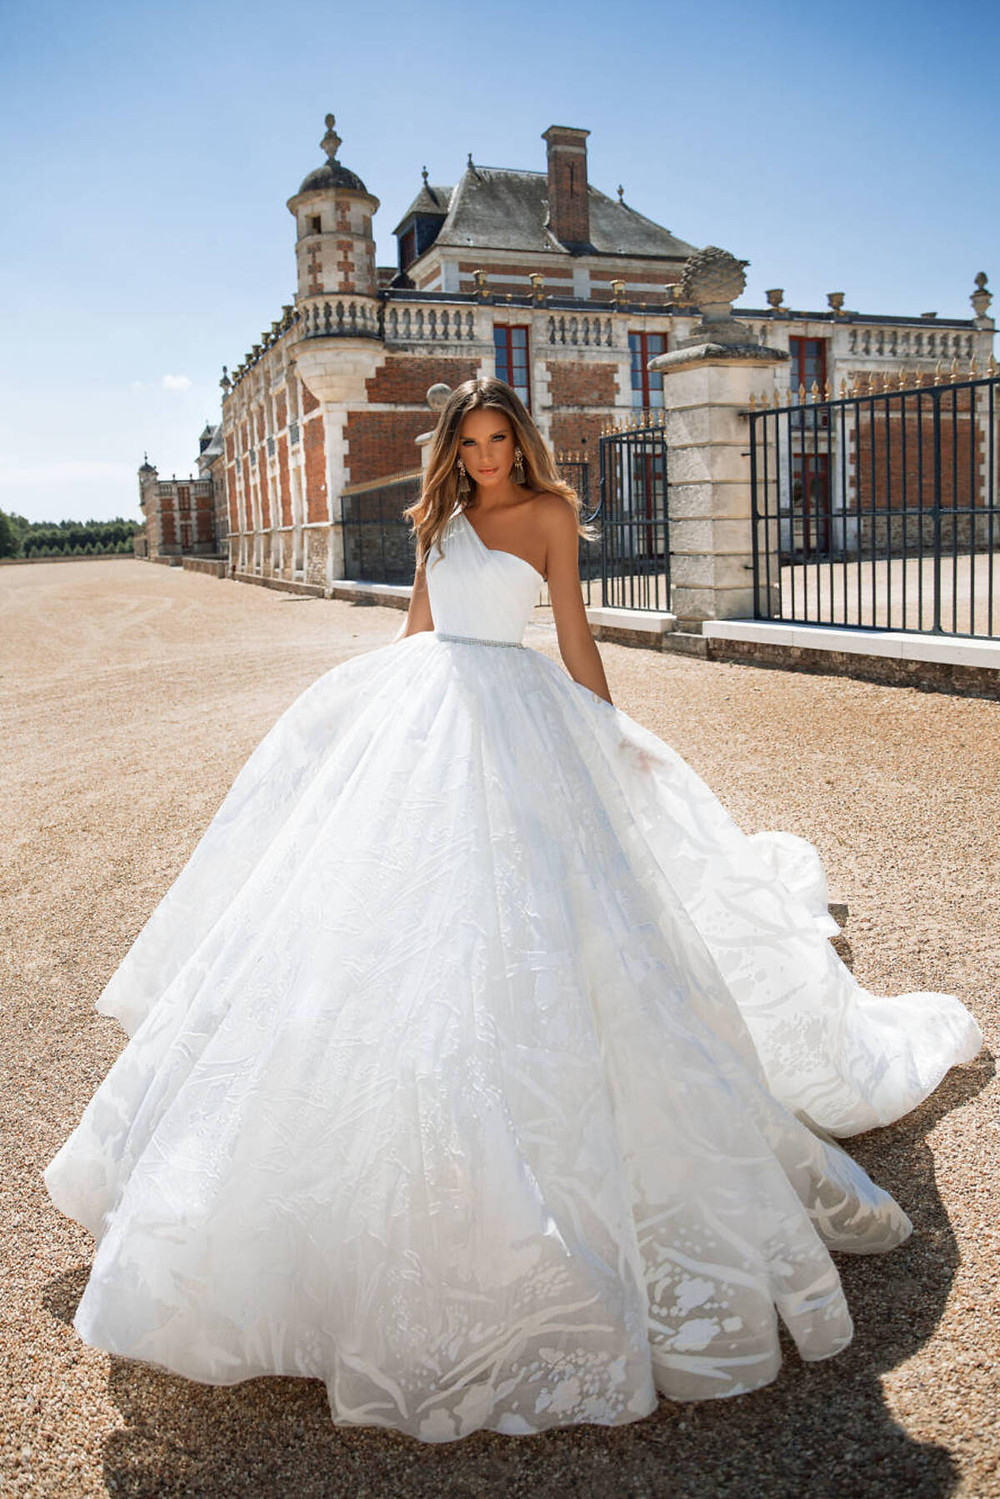 A beautiful one shoulder ball gown wedding dress, with a big skirt and a floral pattern